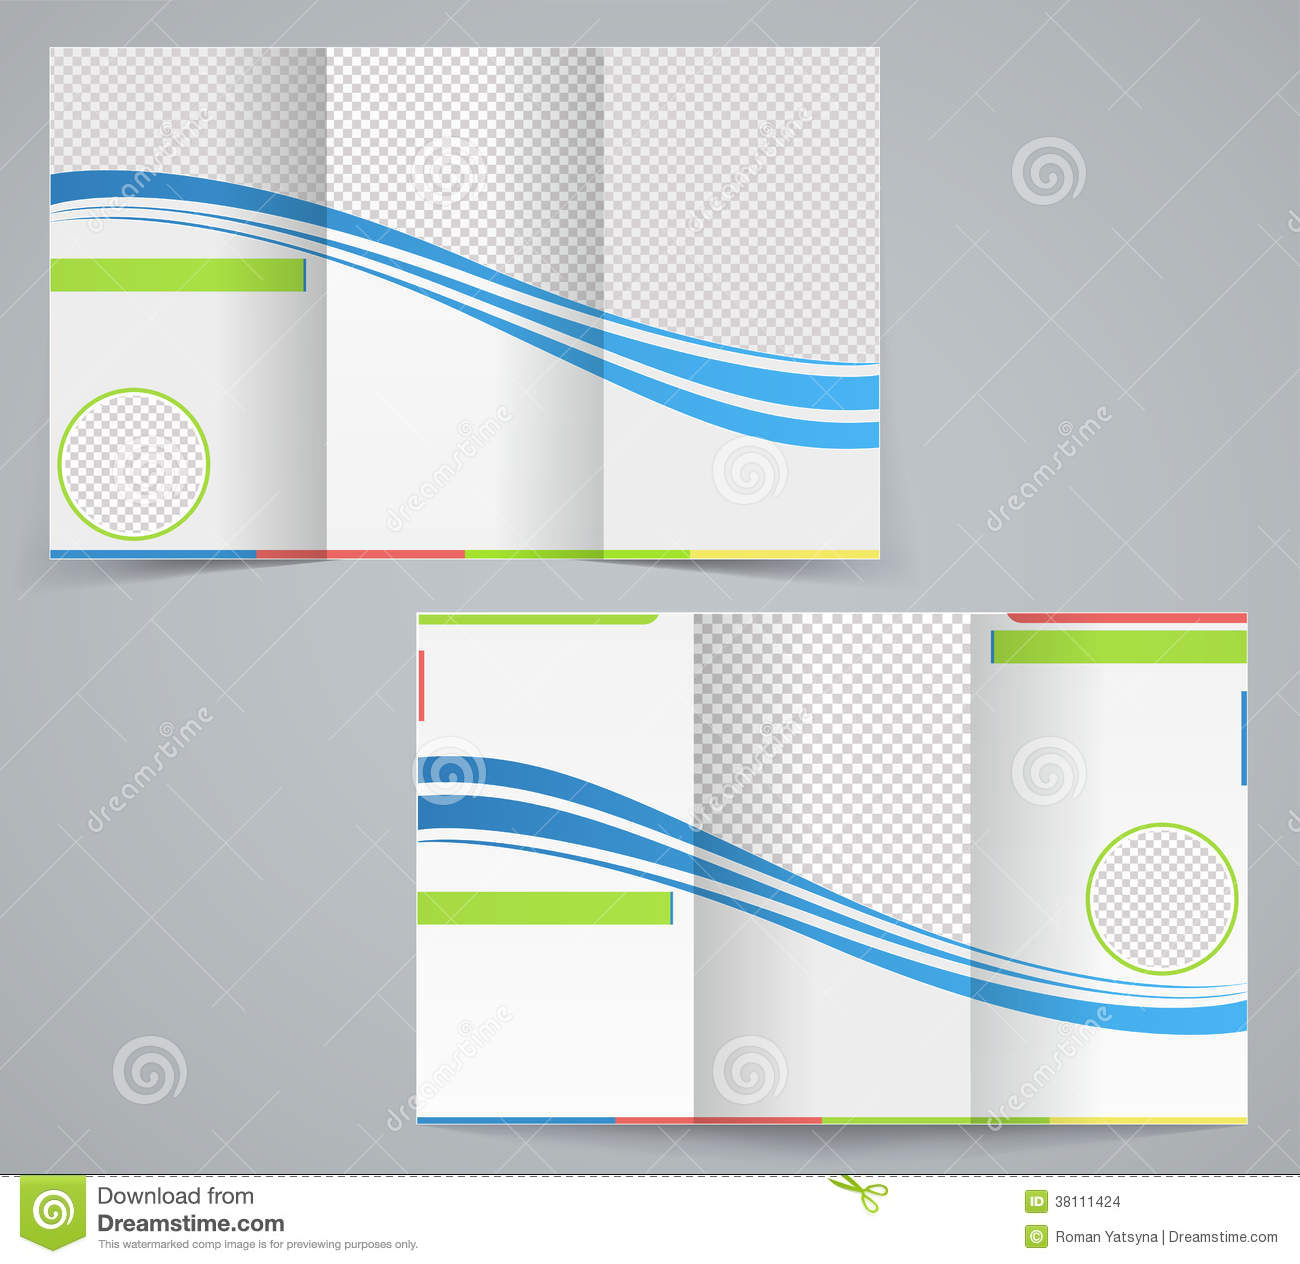 Tri fold business brochure template stock vector for Free tri fold brochure design templates